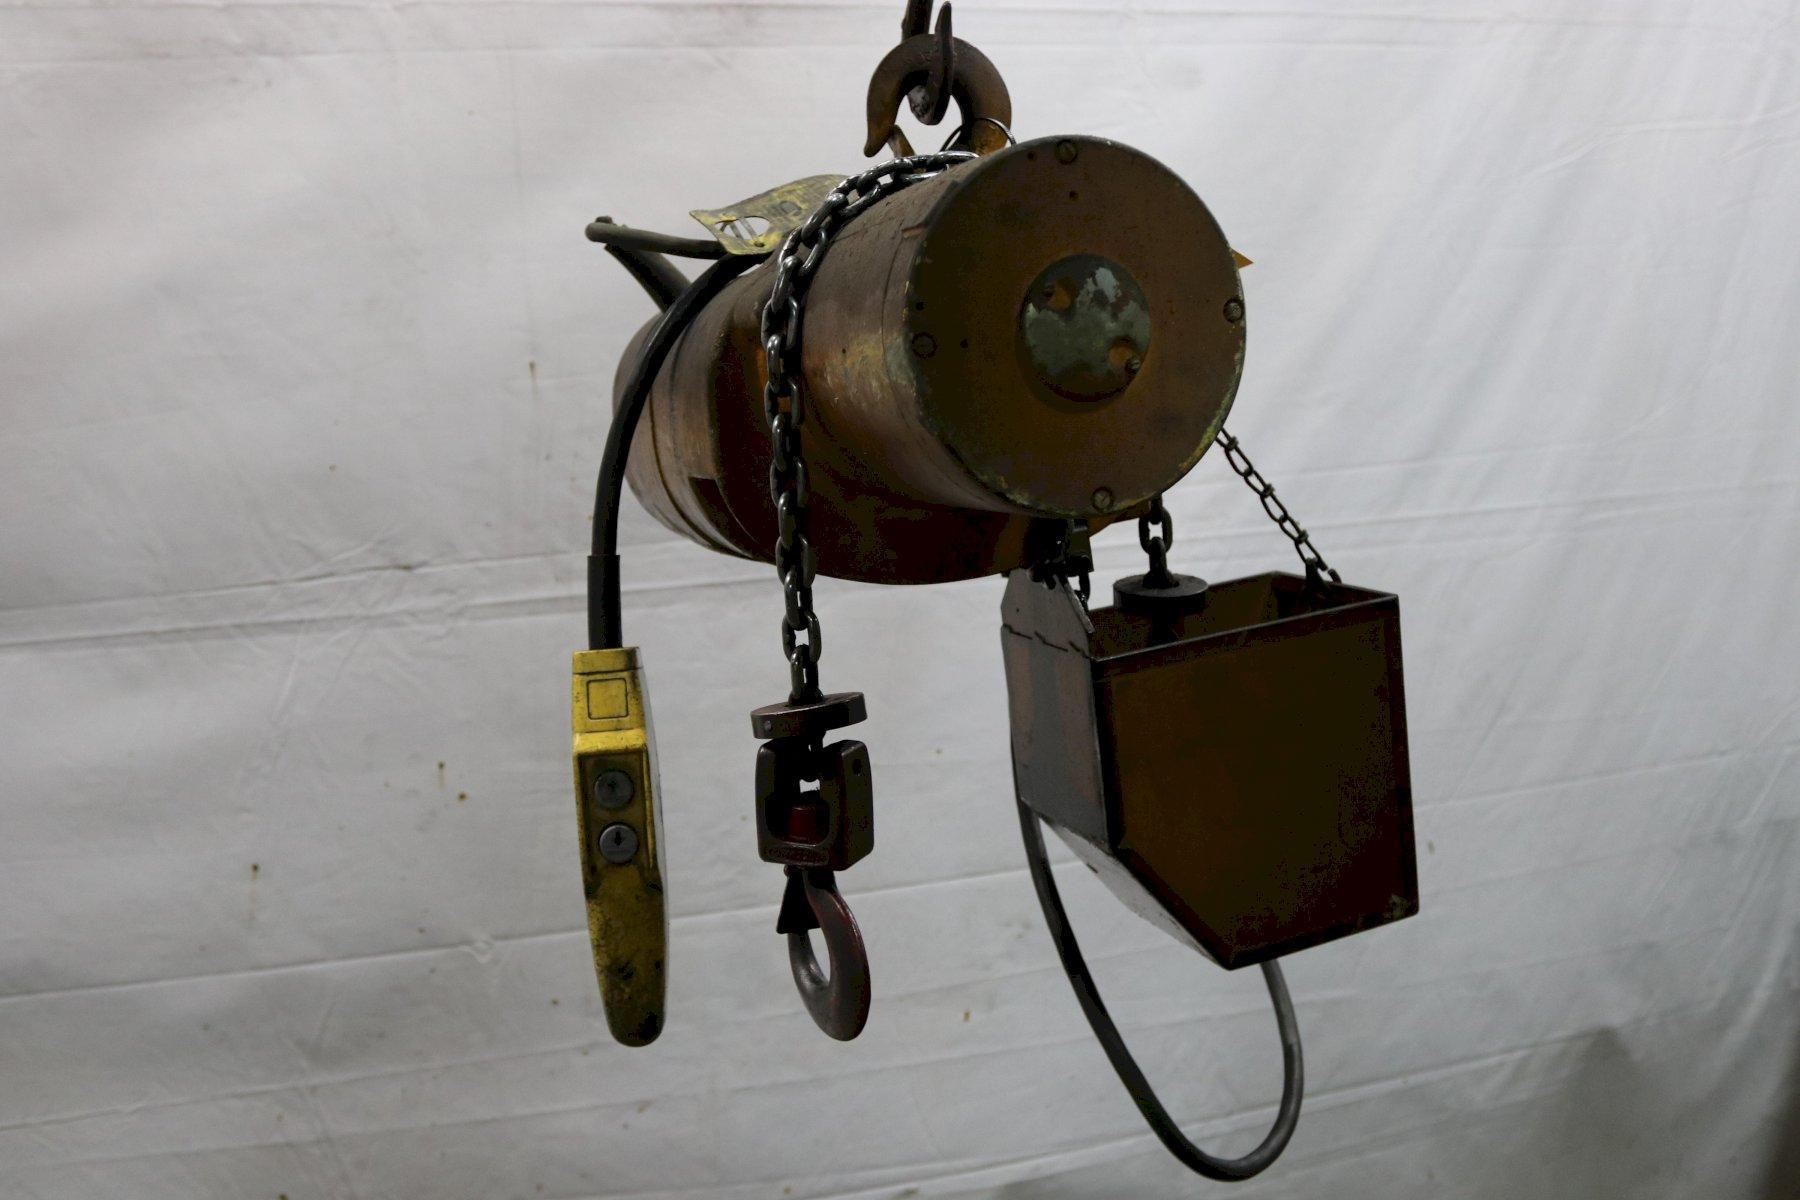 1/4 TON BUDGIT MODEL #113450-10 ELECTRIC POWERED CHAIN HOIST : STOCK #11992